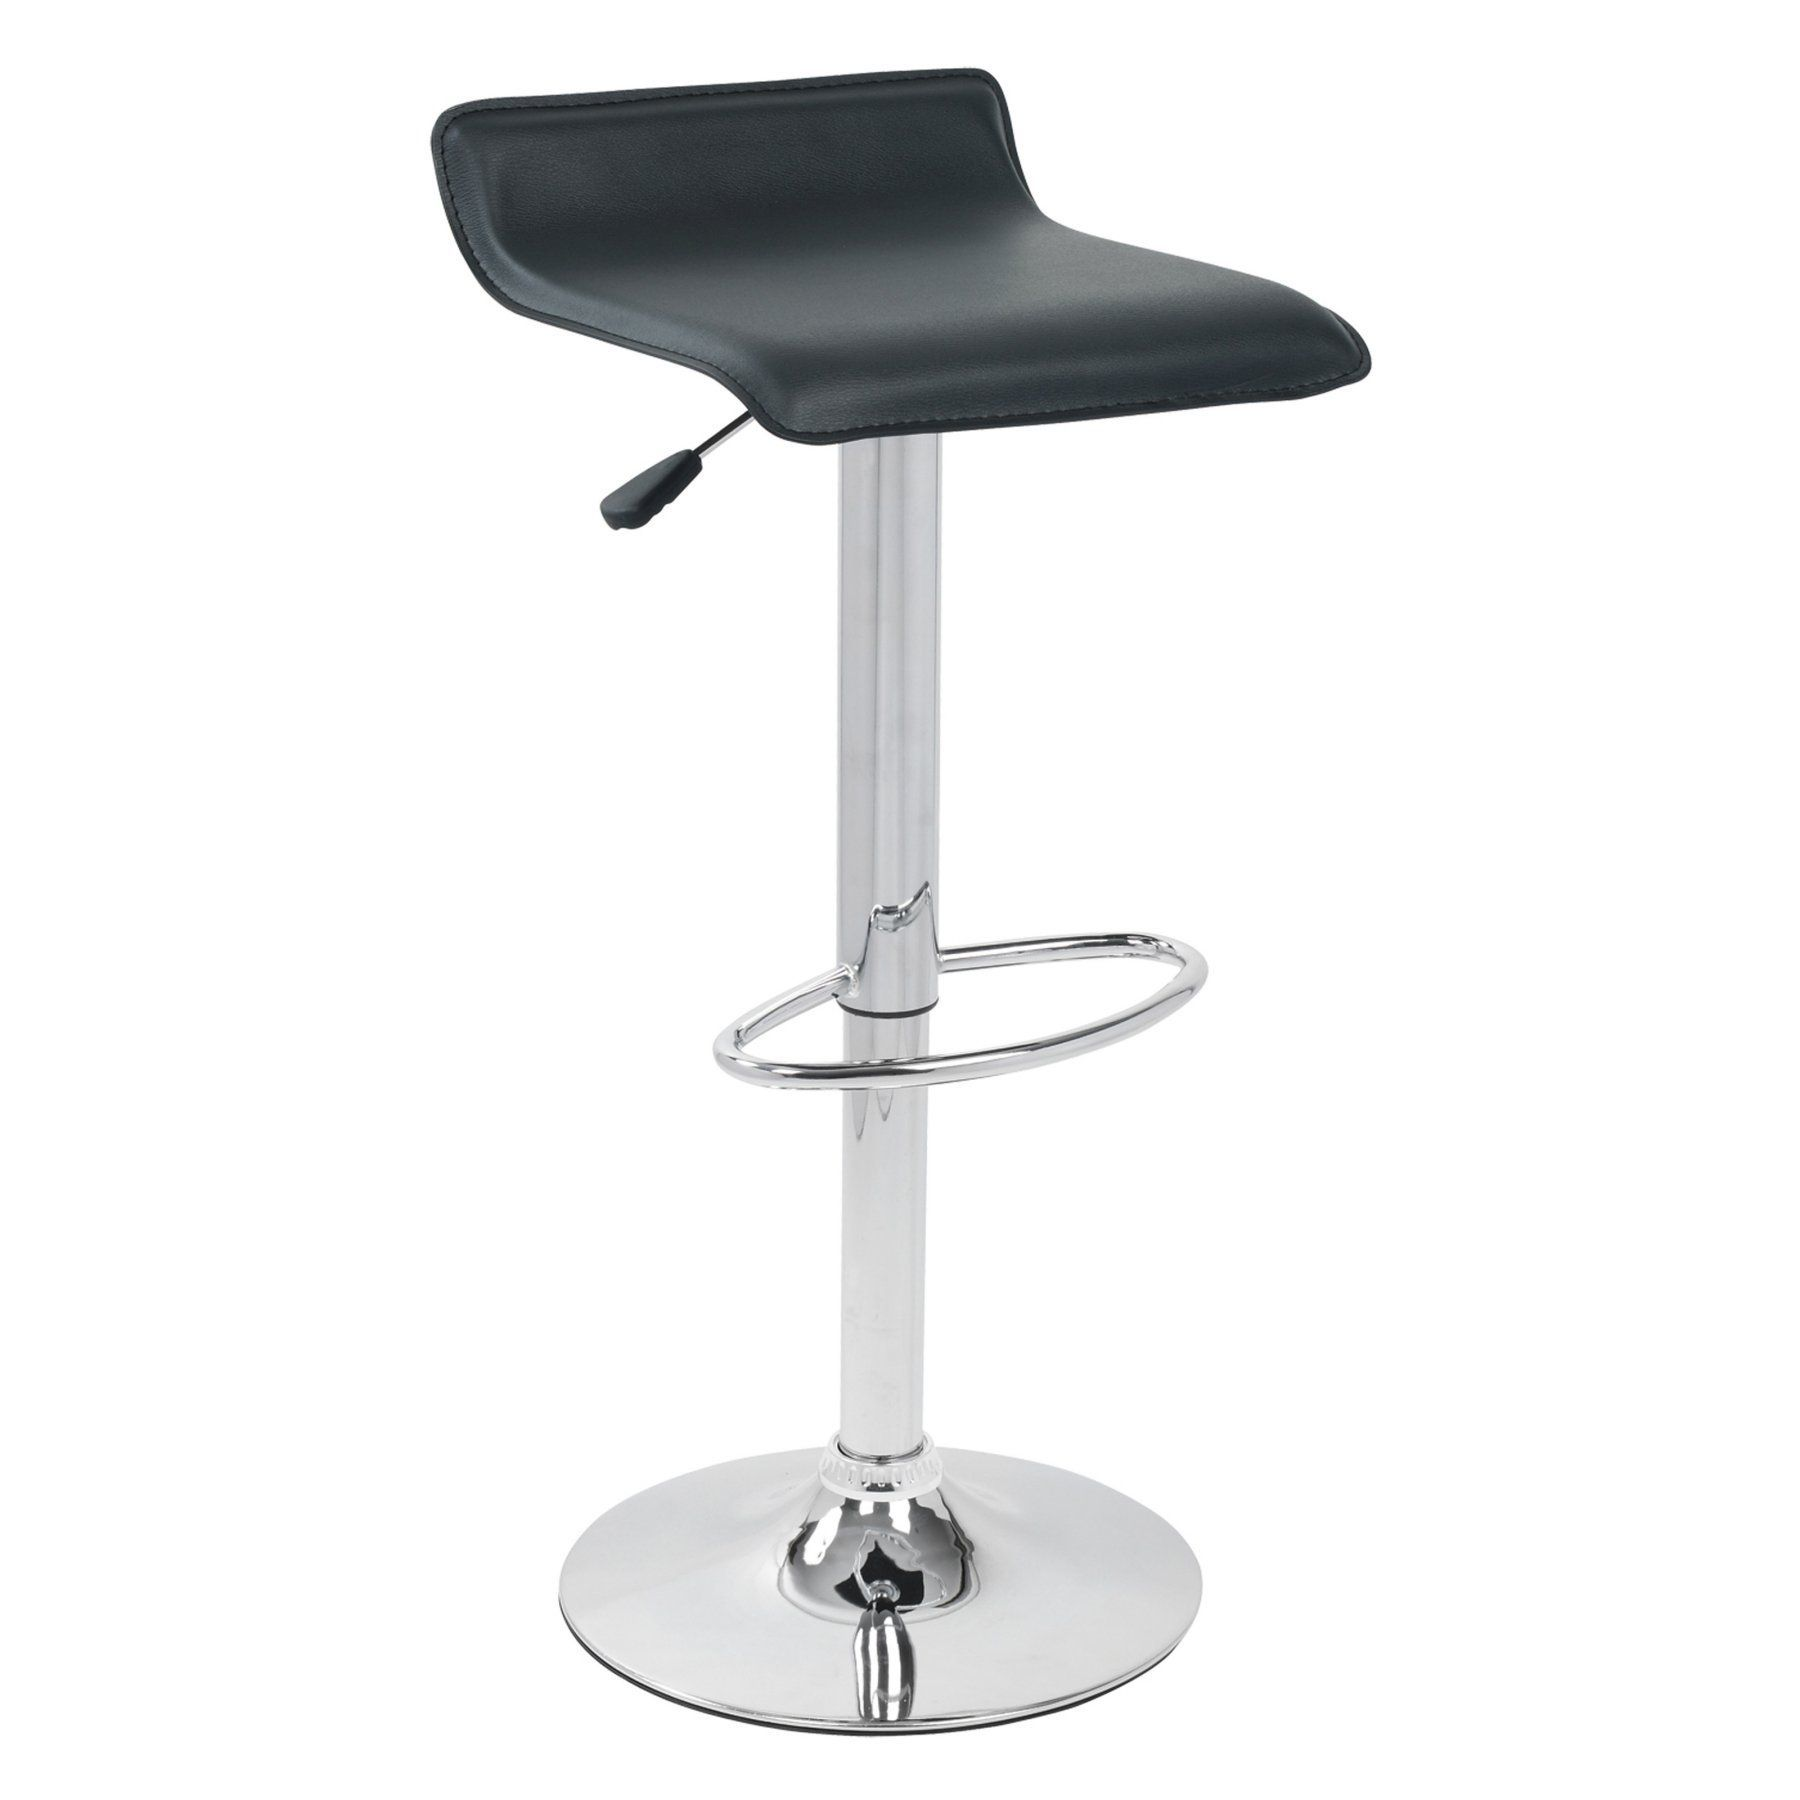 Wondrous Bromi Design Connor Adjustable Backless Barstool Bf3007B Caraccident5 Cool Chair Designs And Ideas Caraccident5Info